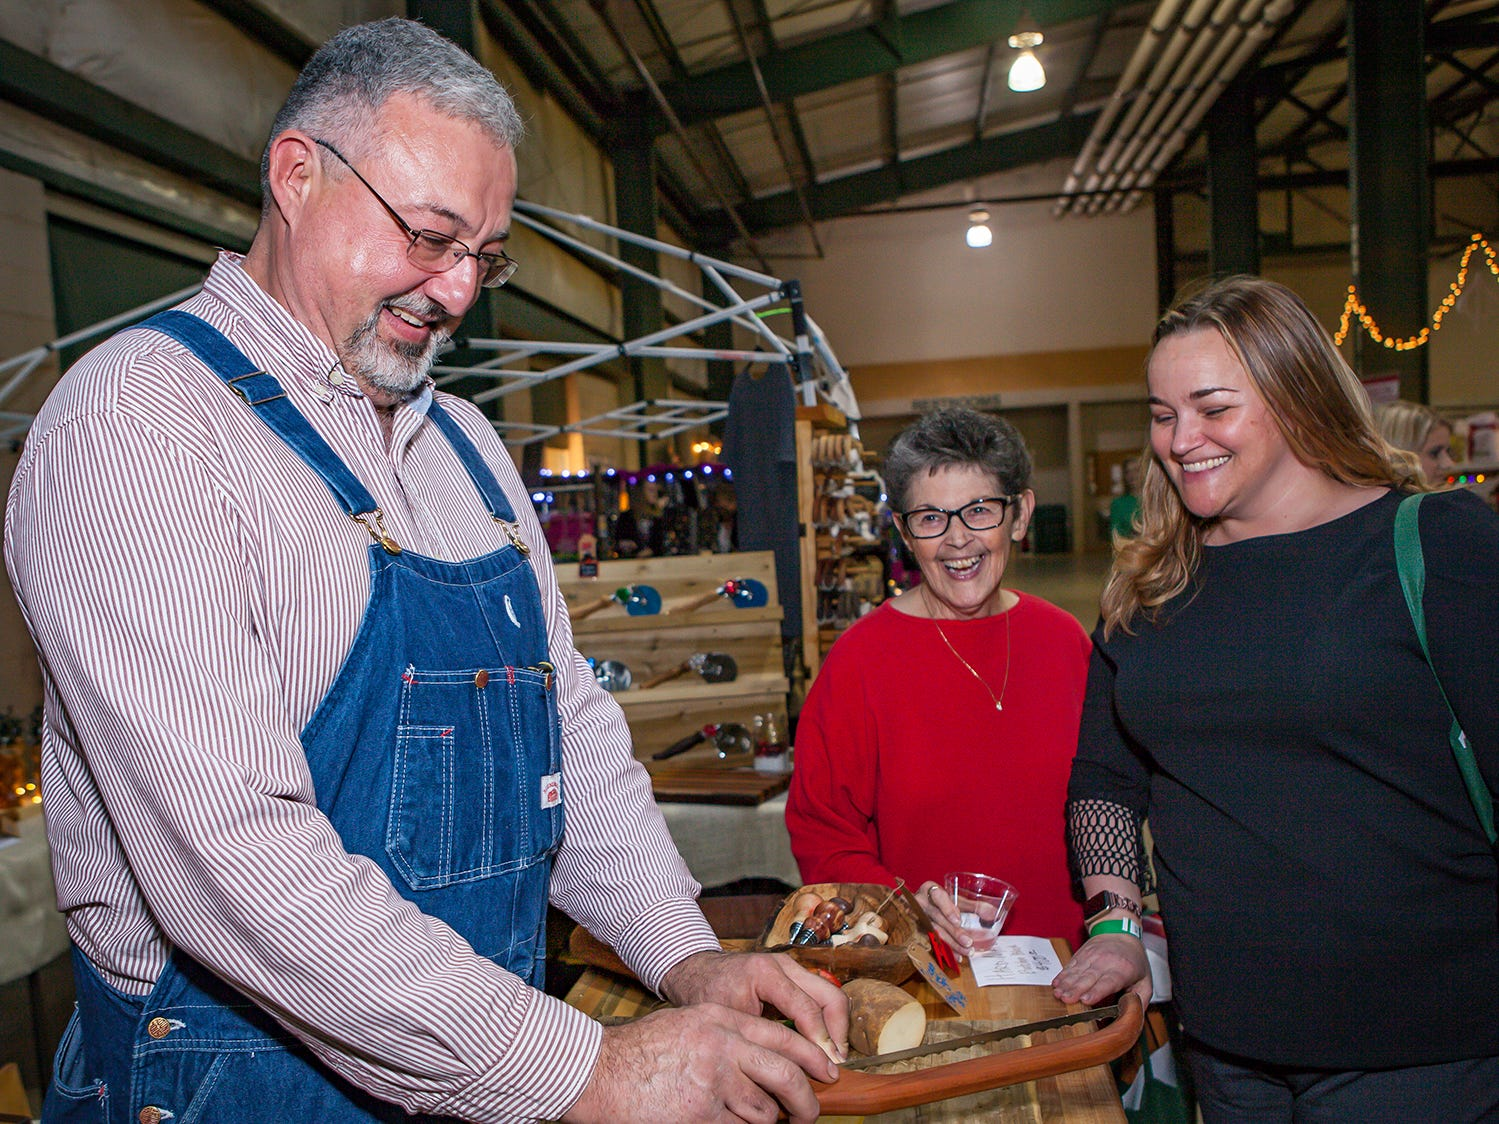 Steve Hopper demonstrates a cutting tool for Glenda Windrow and Rachelle Ayers at Mistletoe & Martinis, the preview party for Junior League of Murfreesboro's 2018 Hollyday Marketplace.